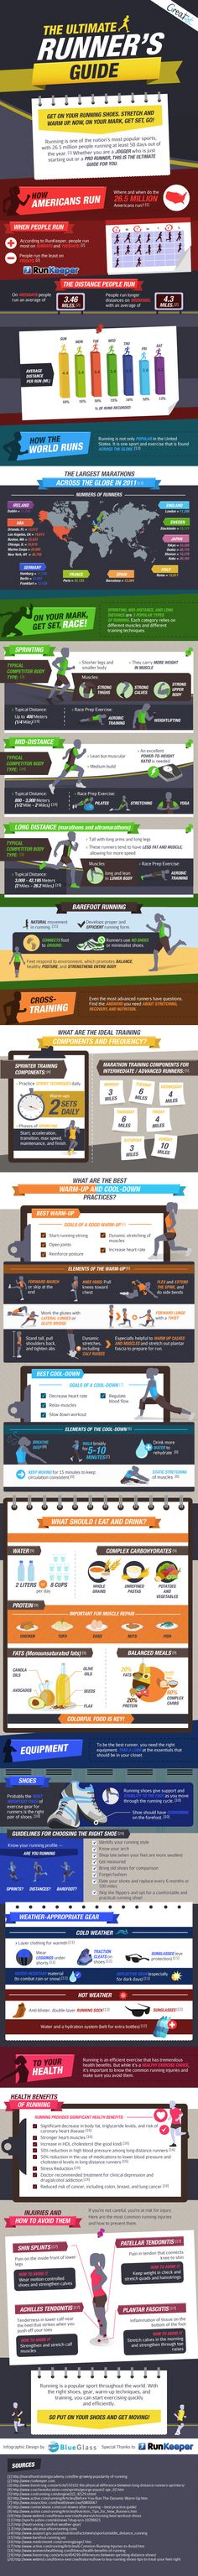 The Ultimate Runner's Guide (Infographic) | Greatist